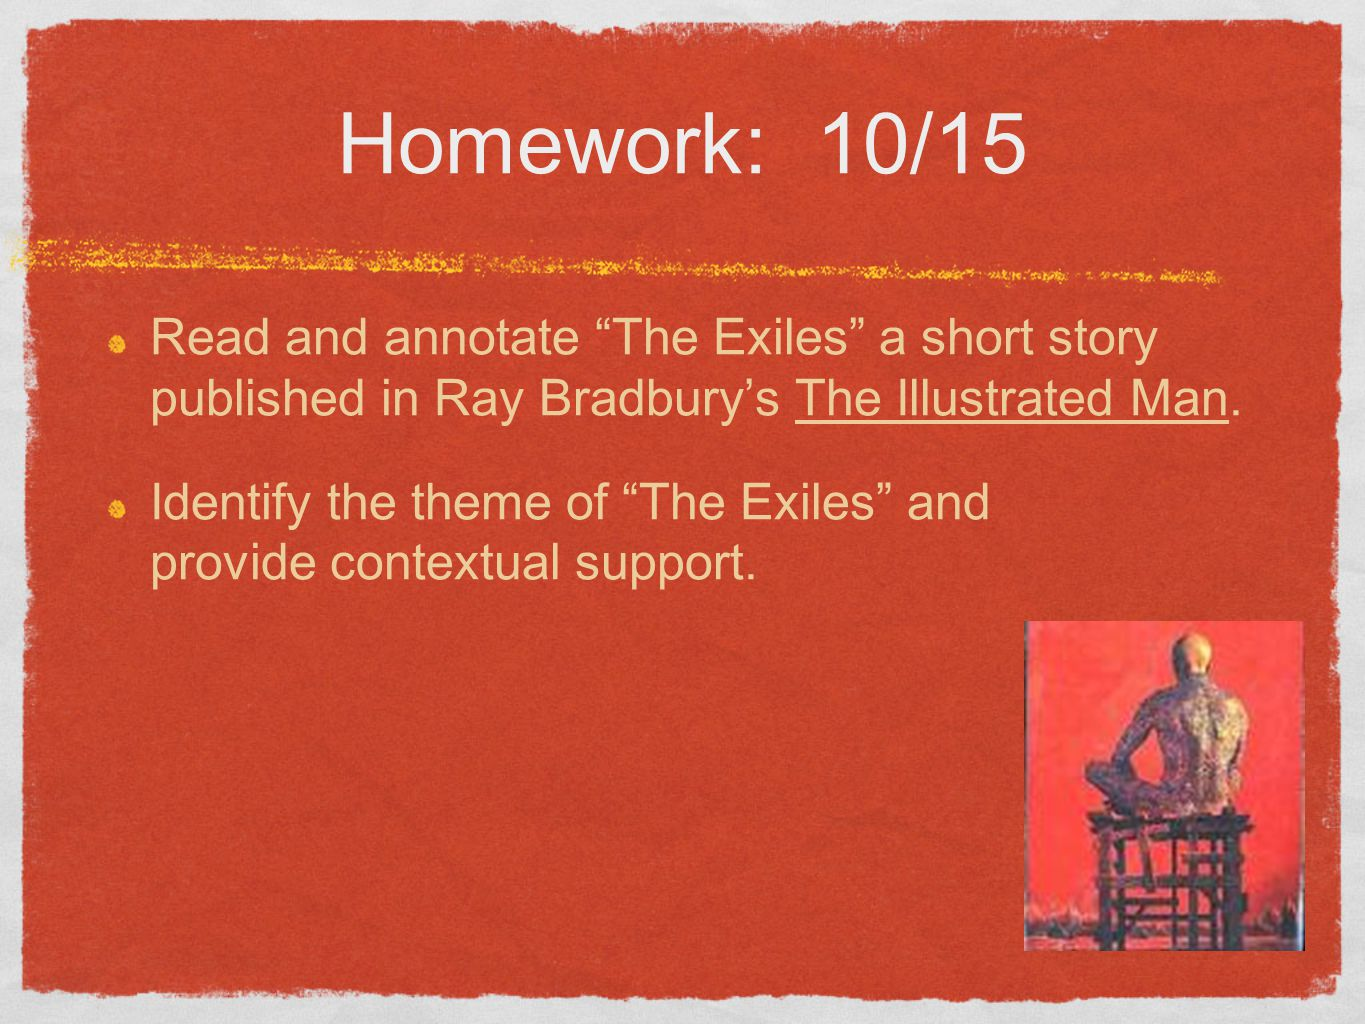 Homework: 10/15 Read and annotate The Exiles a short story published in Ray Bradbury's The Illustrated Man.